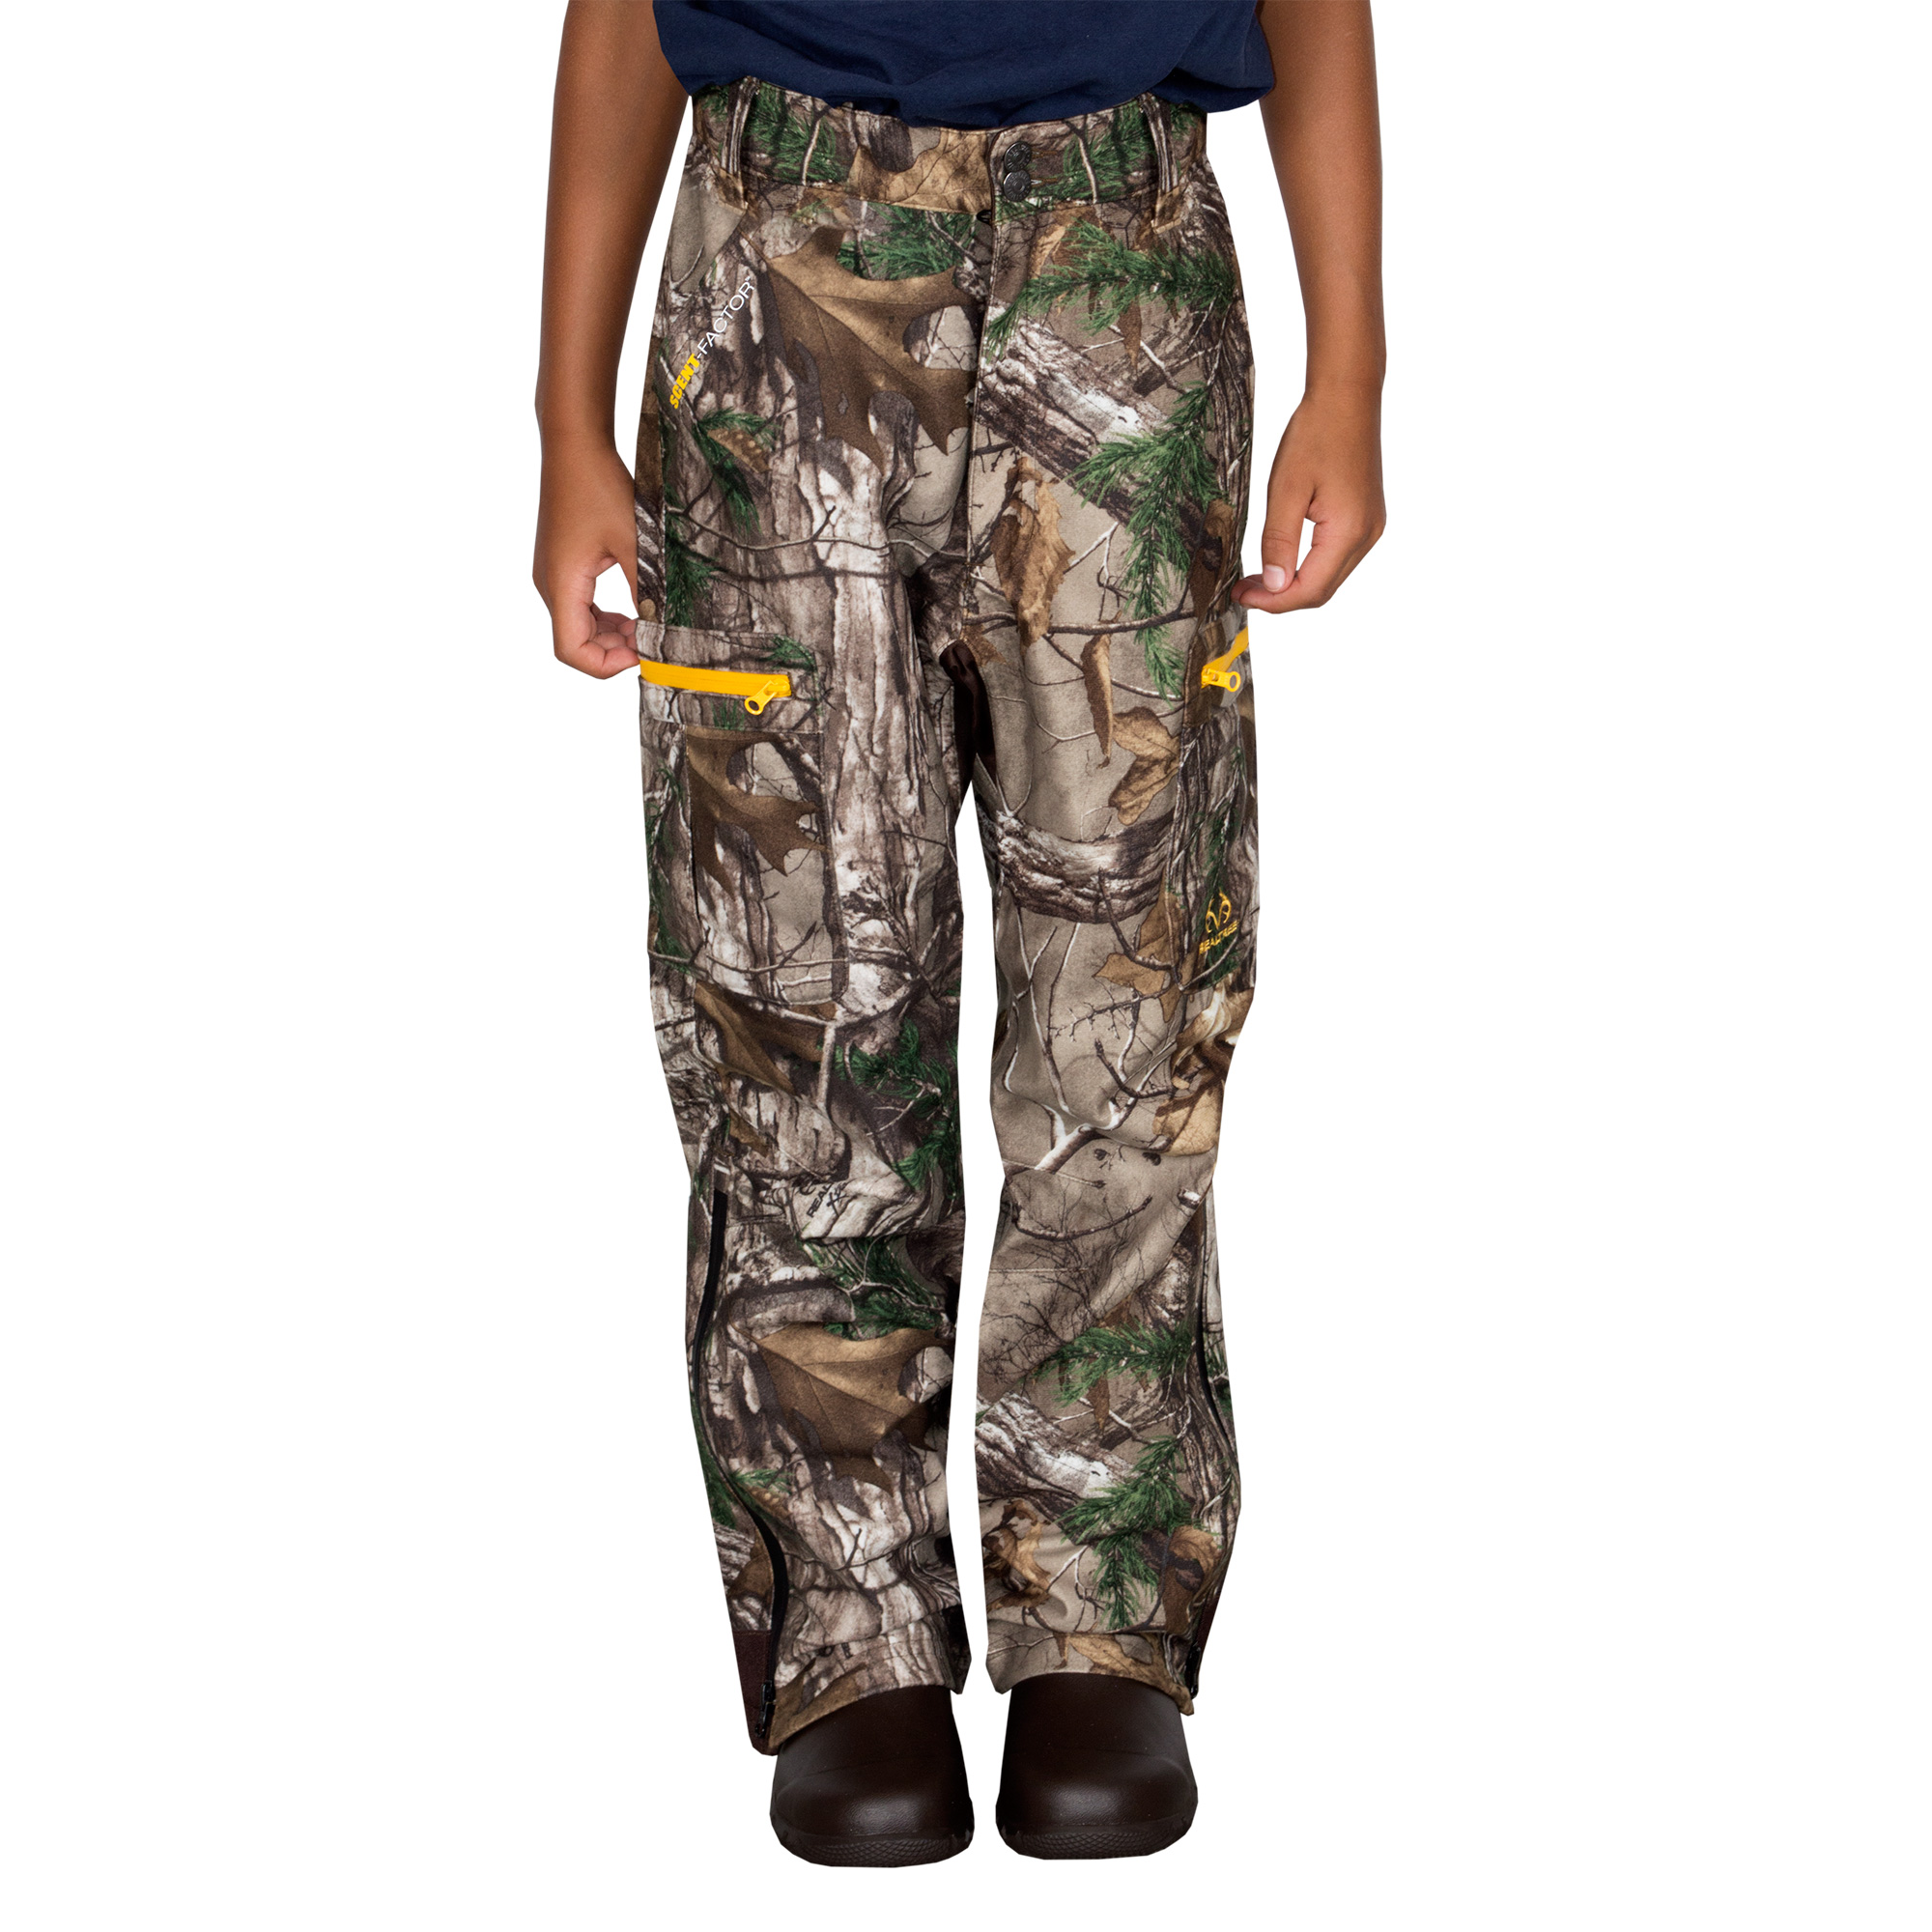 Youth Scent Control Pants Realtree Xtra L by Mahco Inc